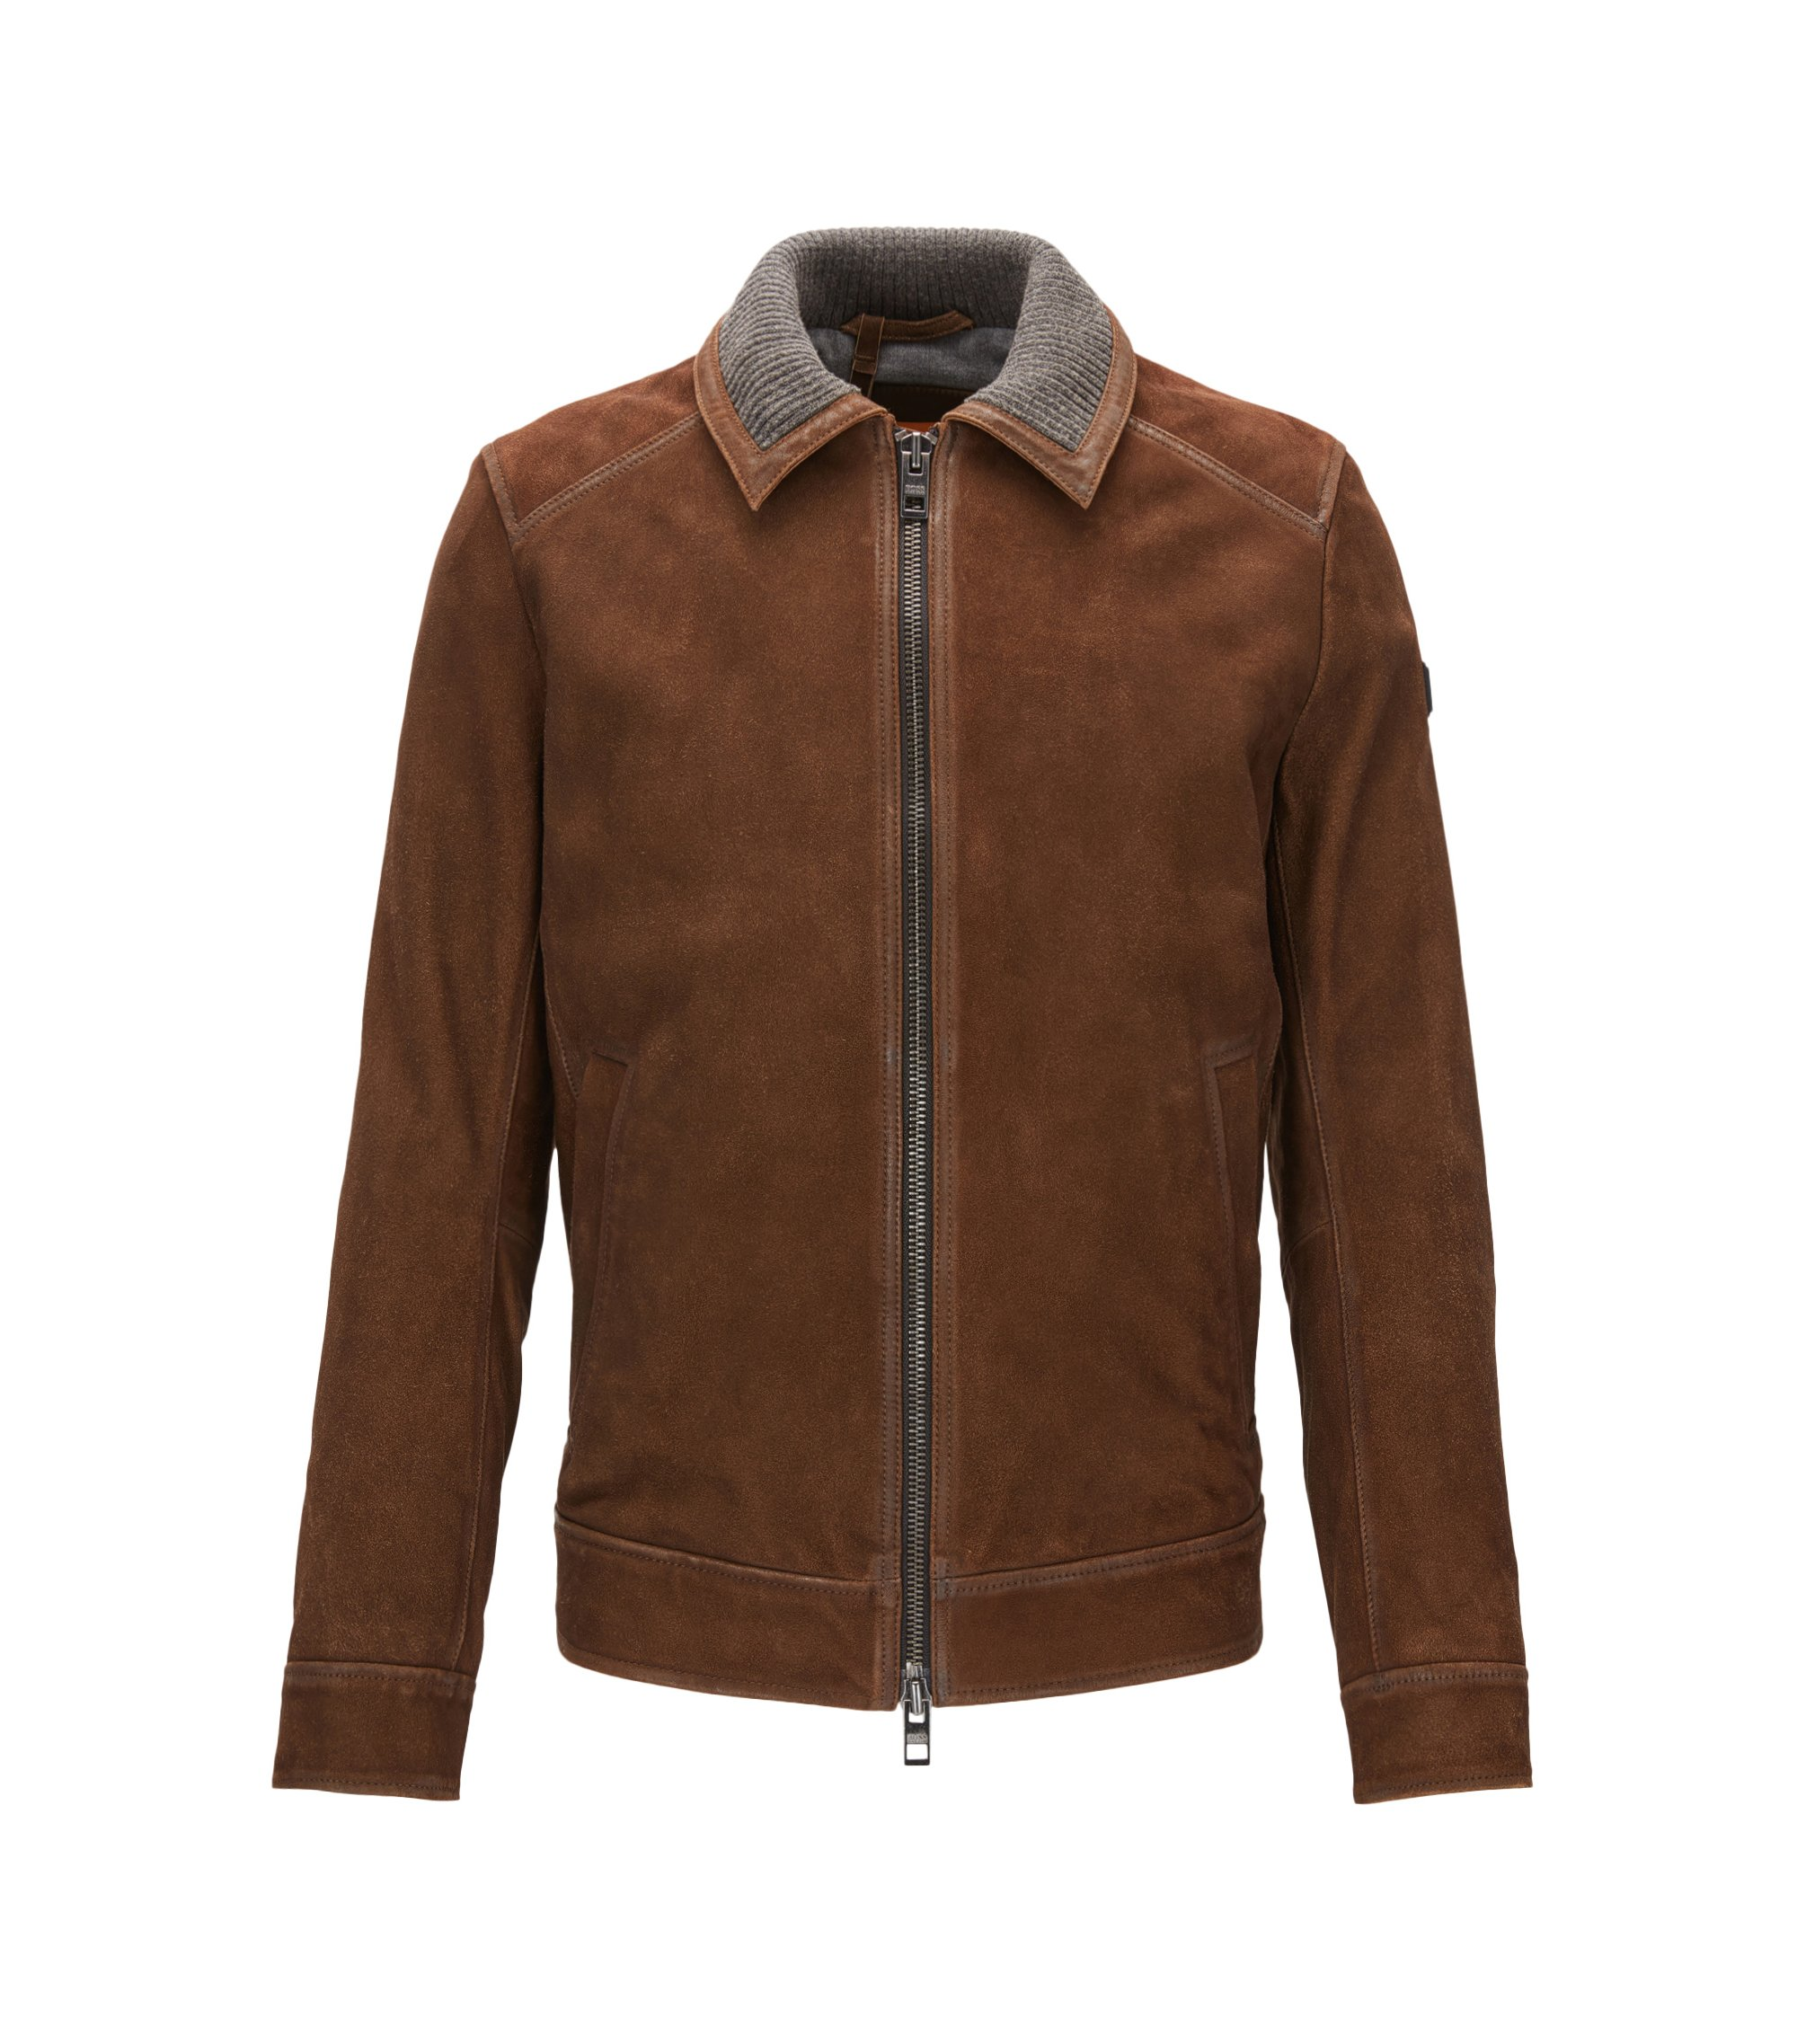 Goat Suede Leather Jacket | Jacien, Beige